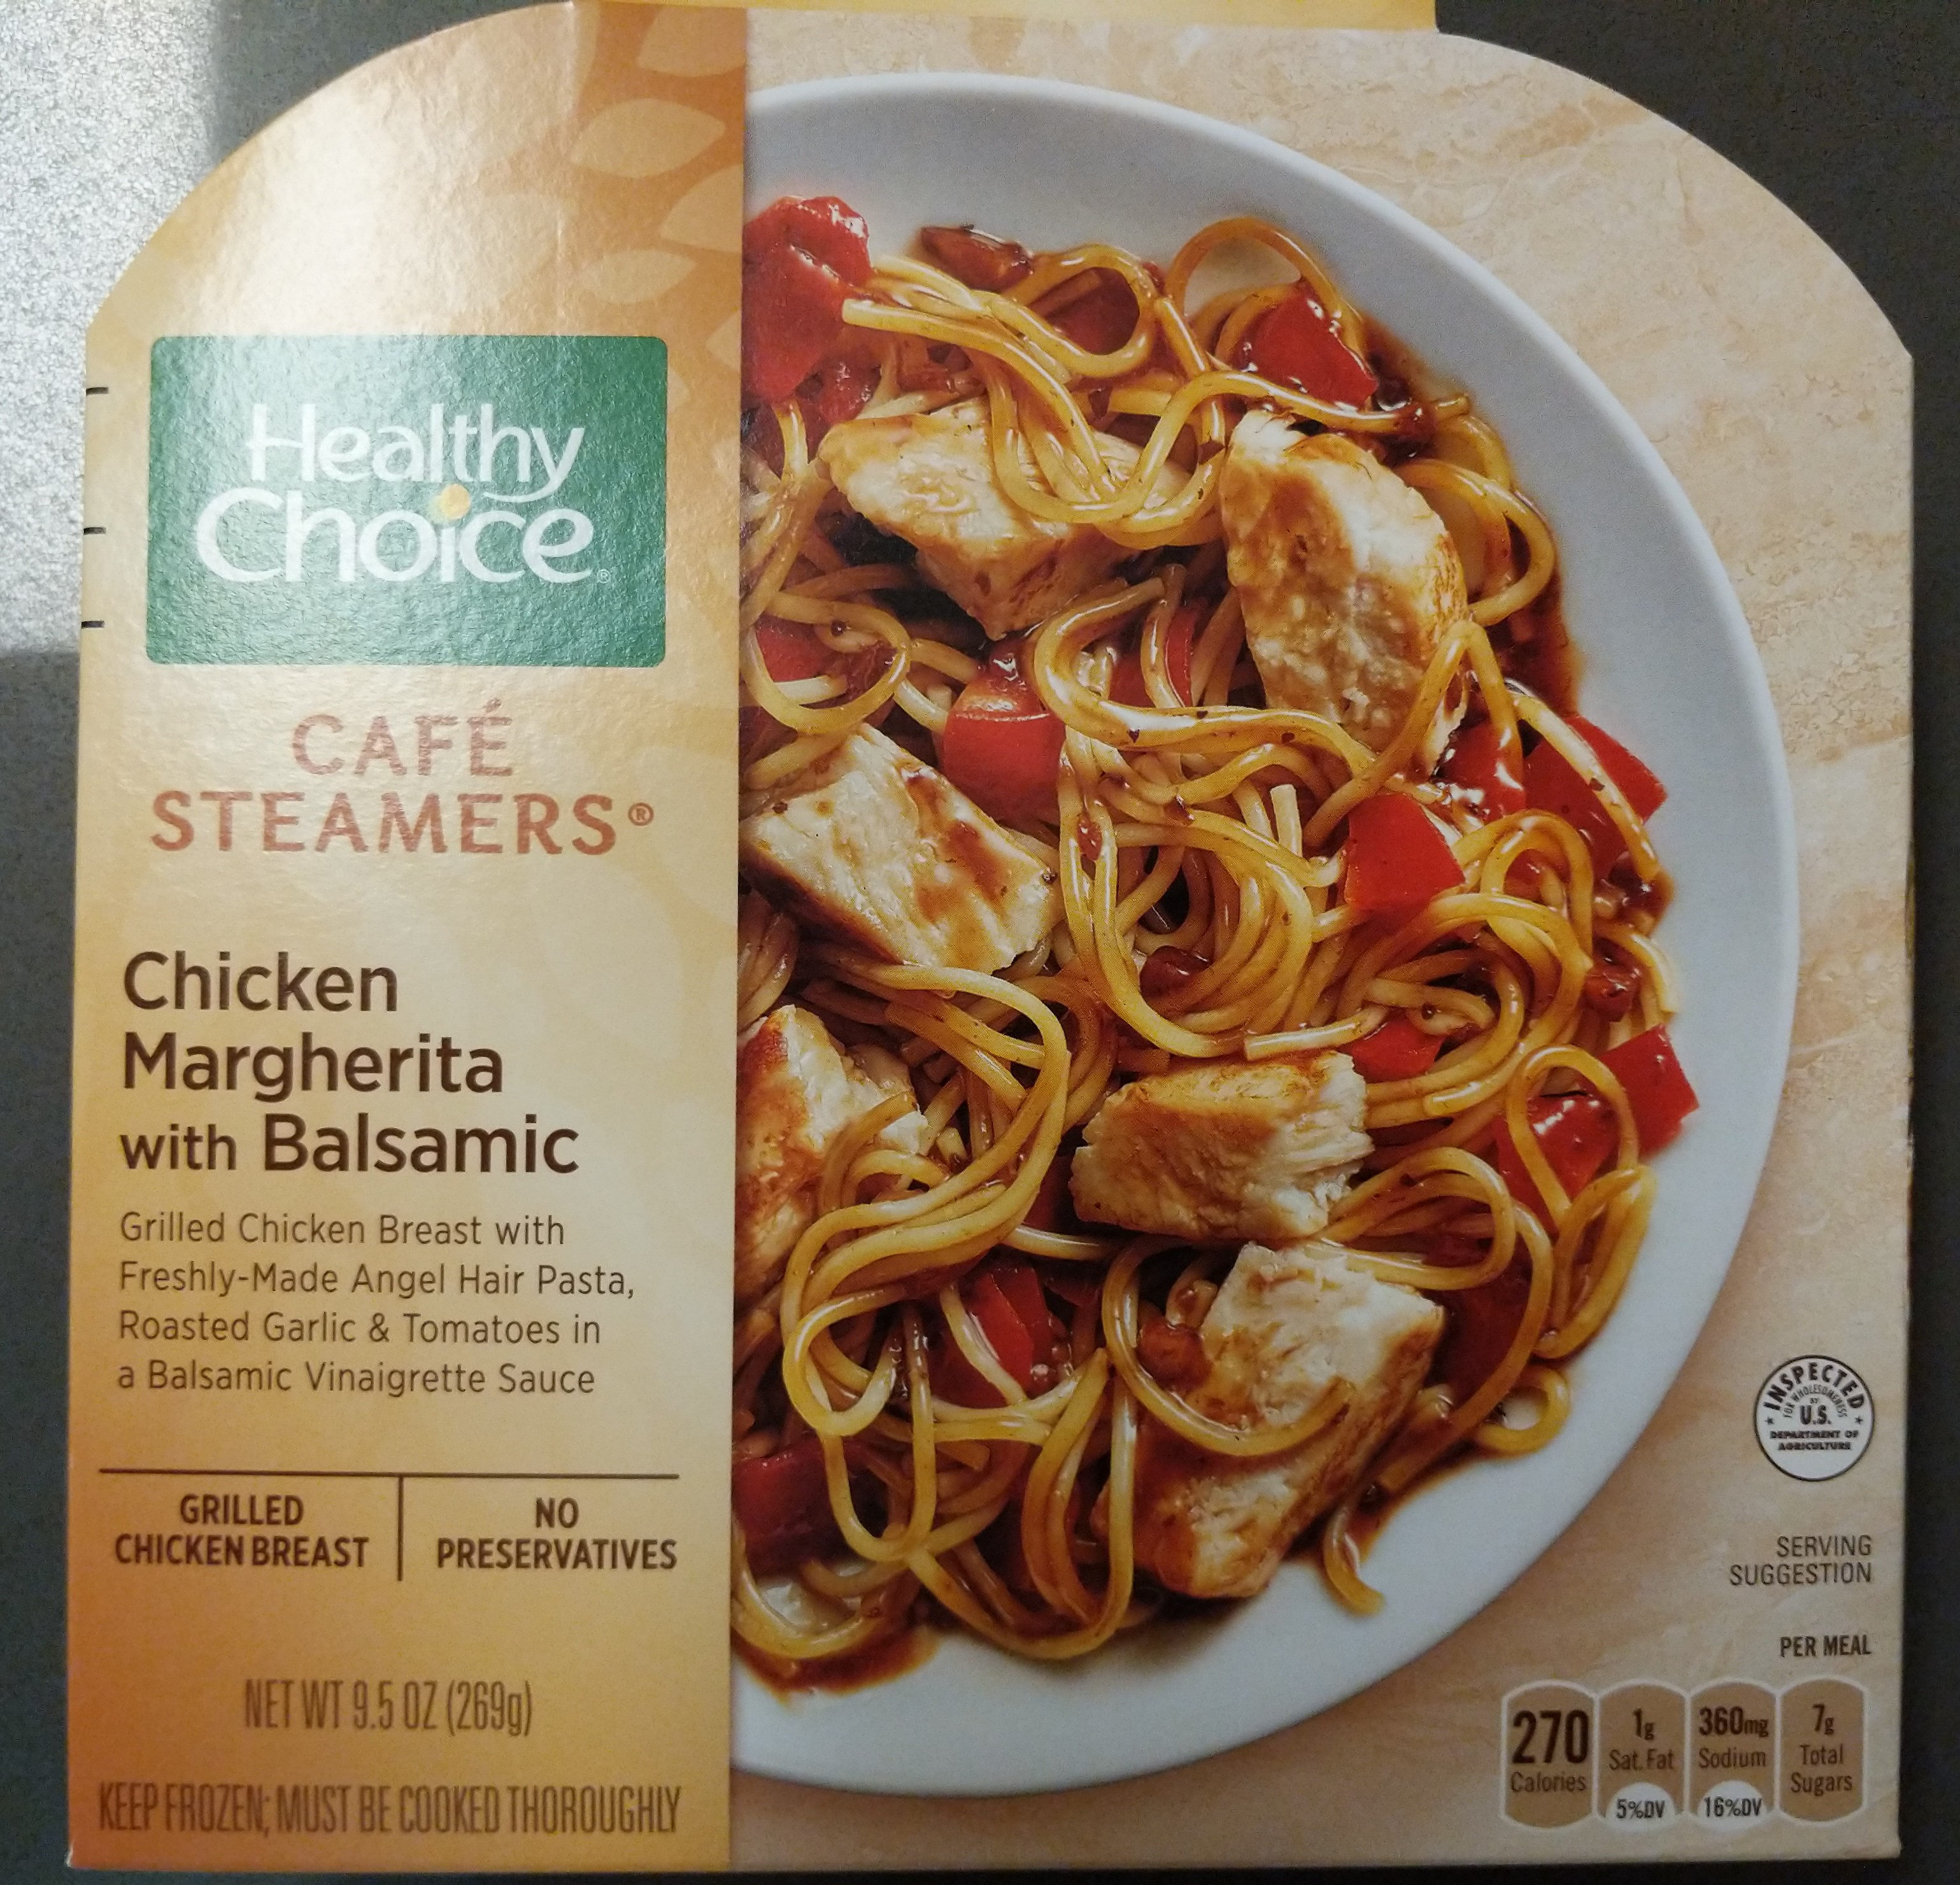 Cafe Steamers - Chicken Margherita with Balsamic - Product